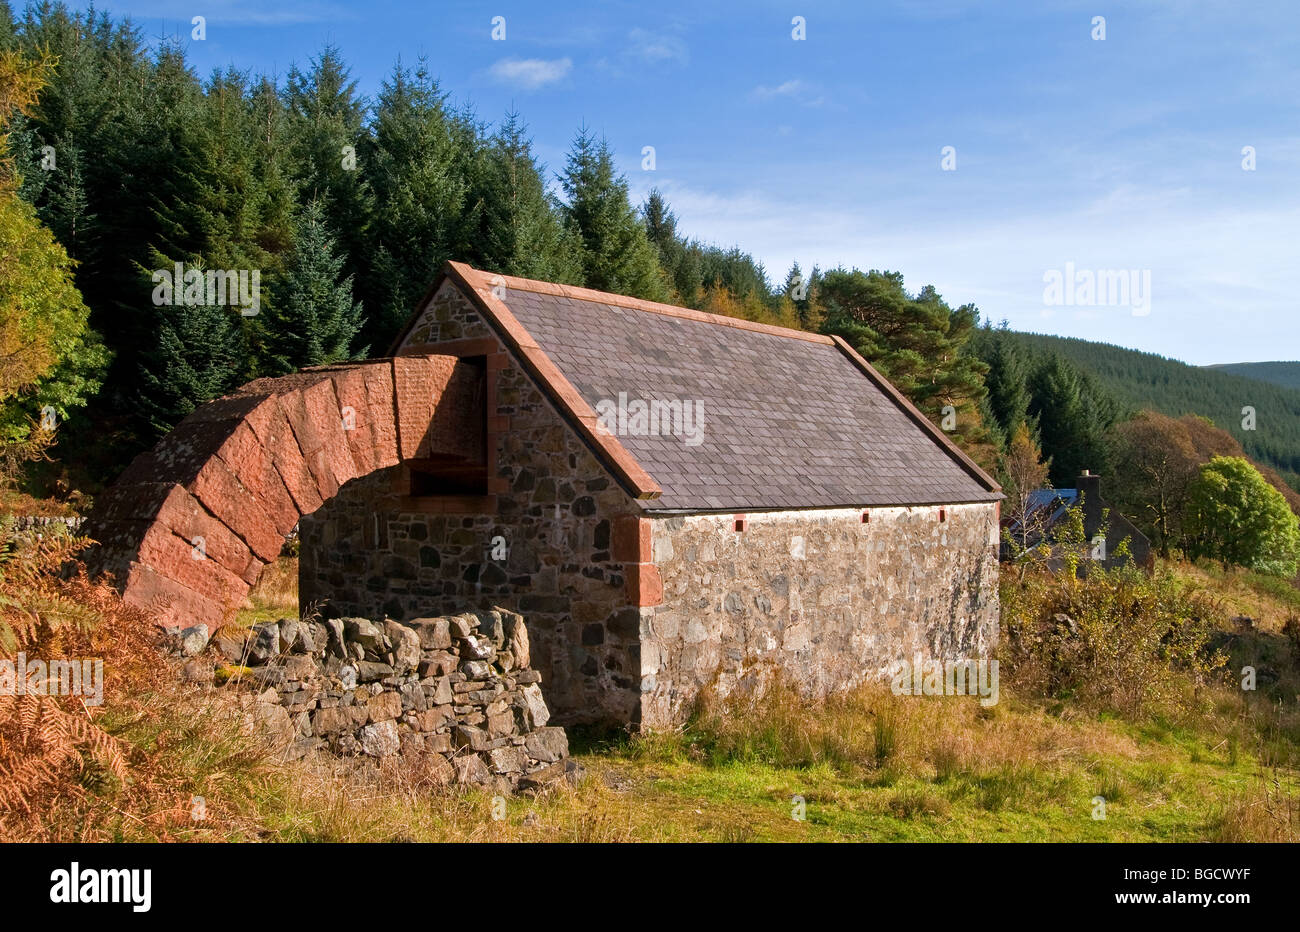 The Byre, Striding Arches Art Project, Cairnhead, Nithsdale, Dumfries and Galloway, Scotland - Stock Image